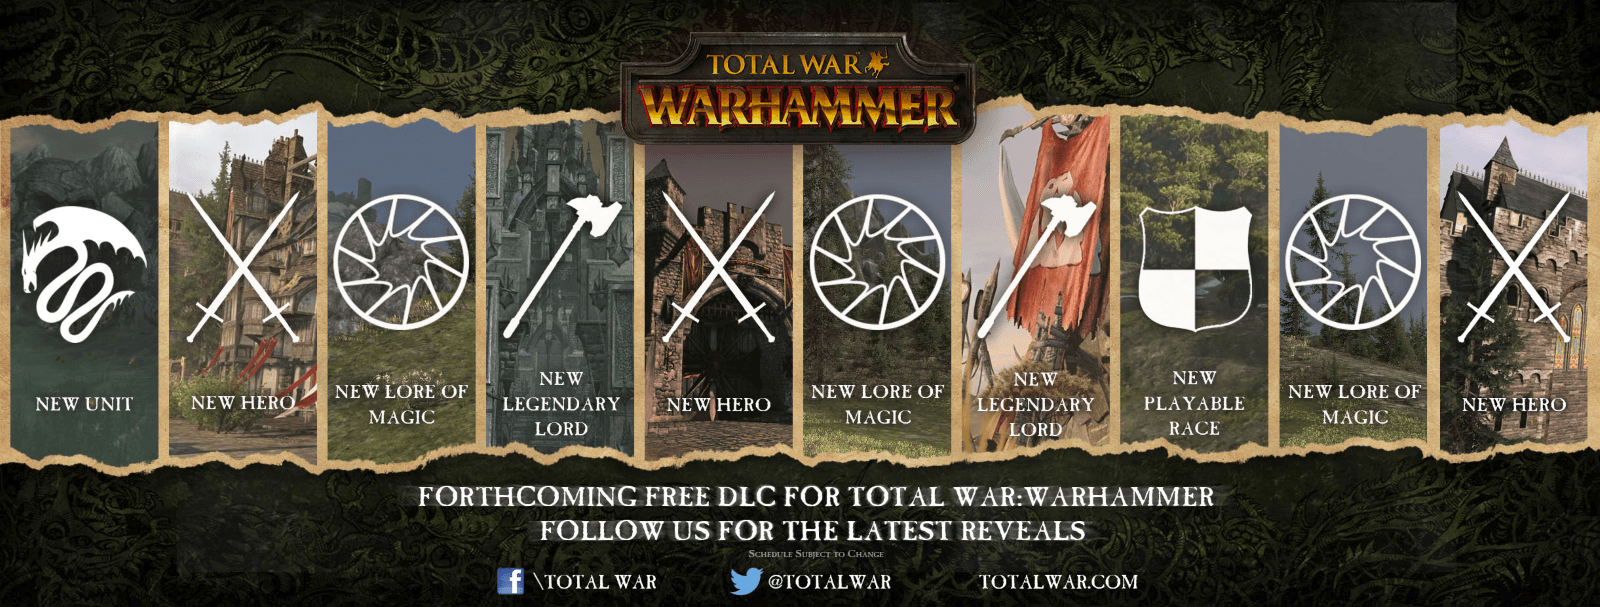 Total War: Warhammer Free DLC Plans Announced